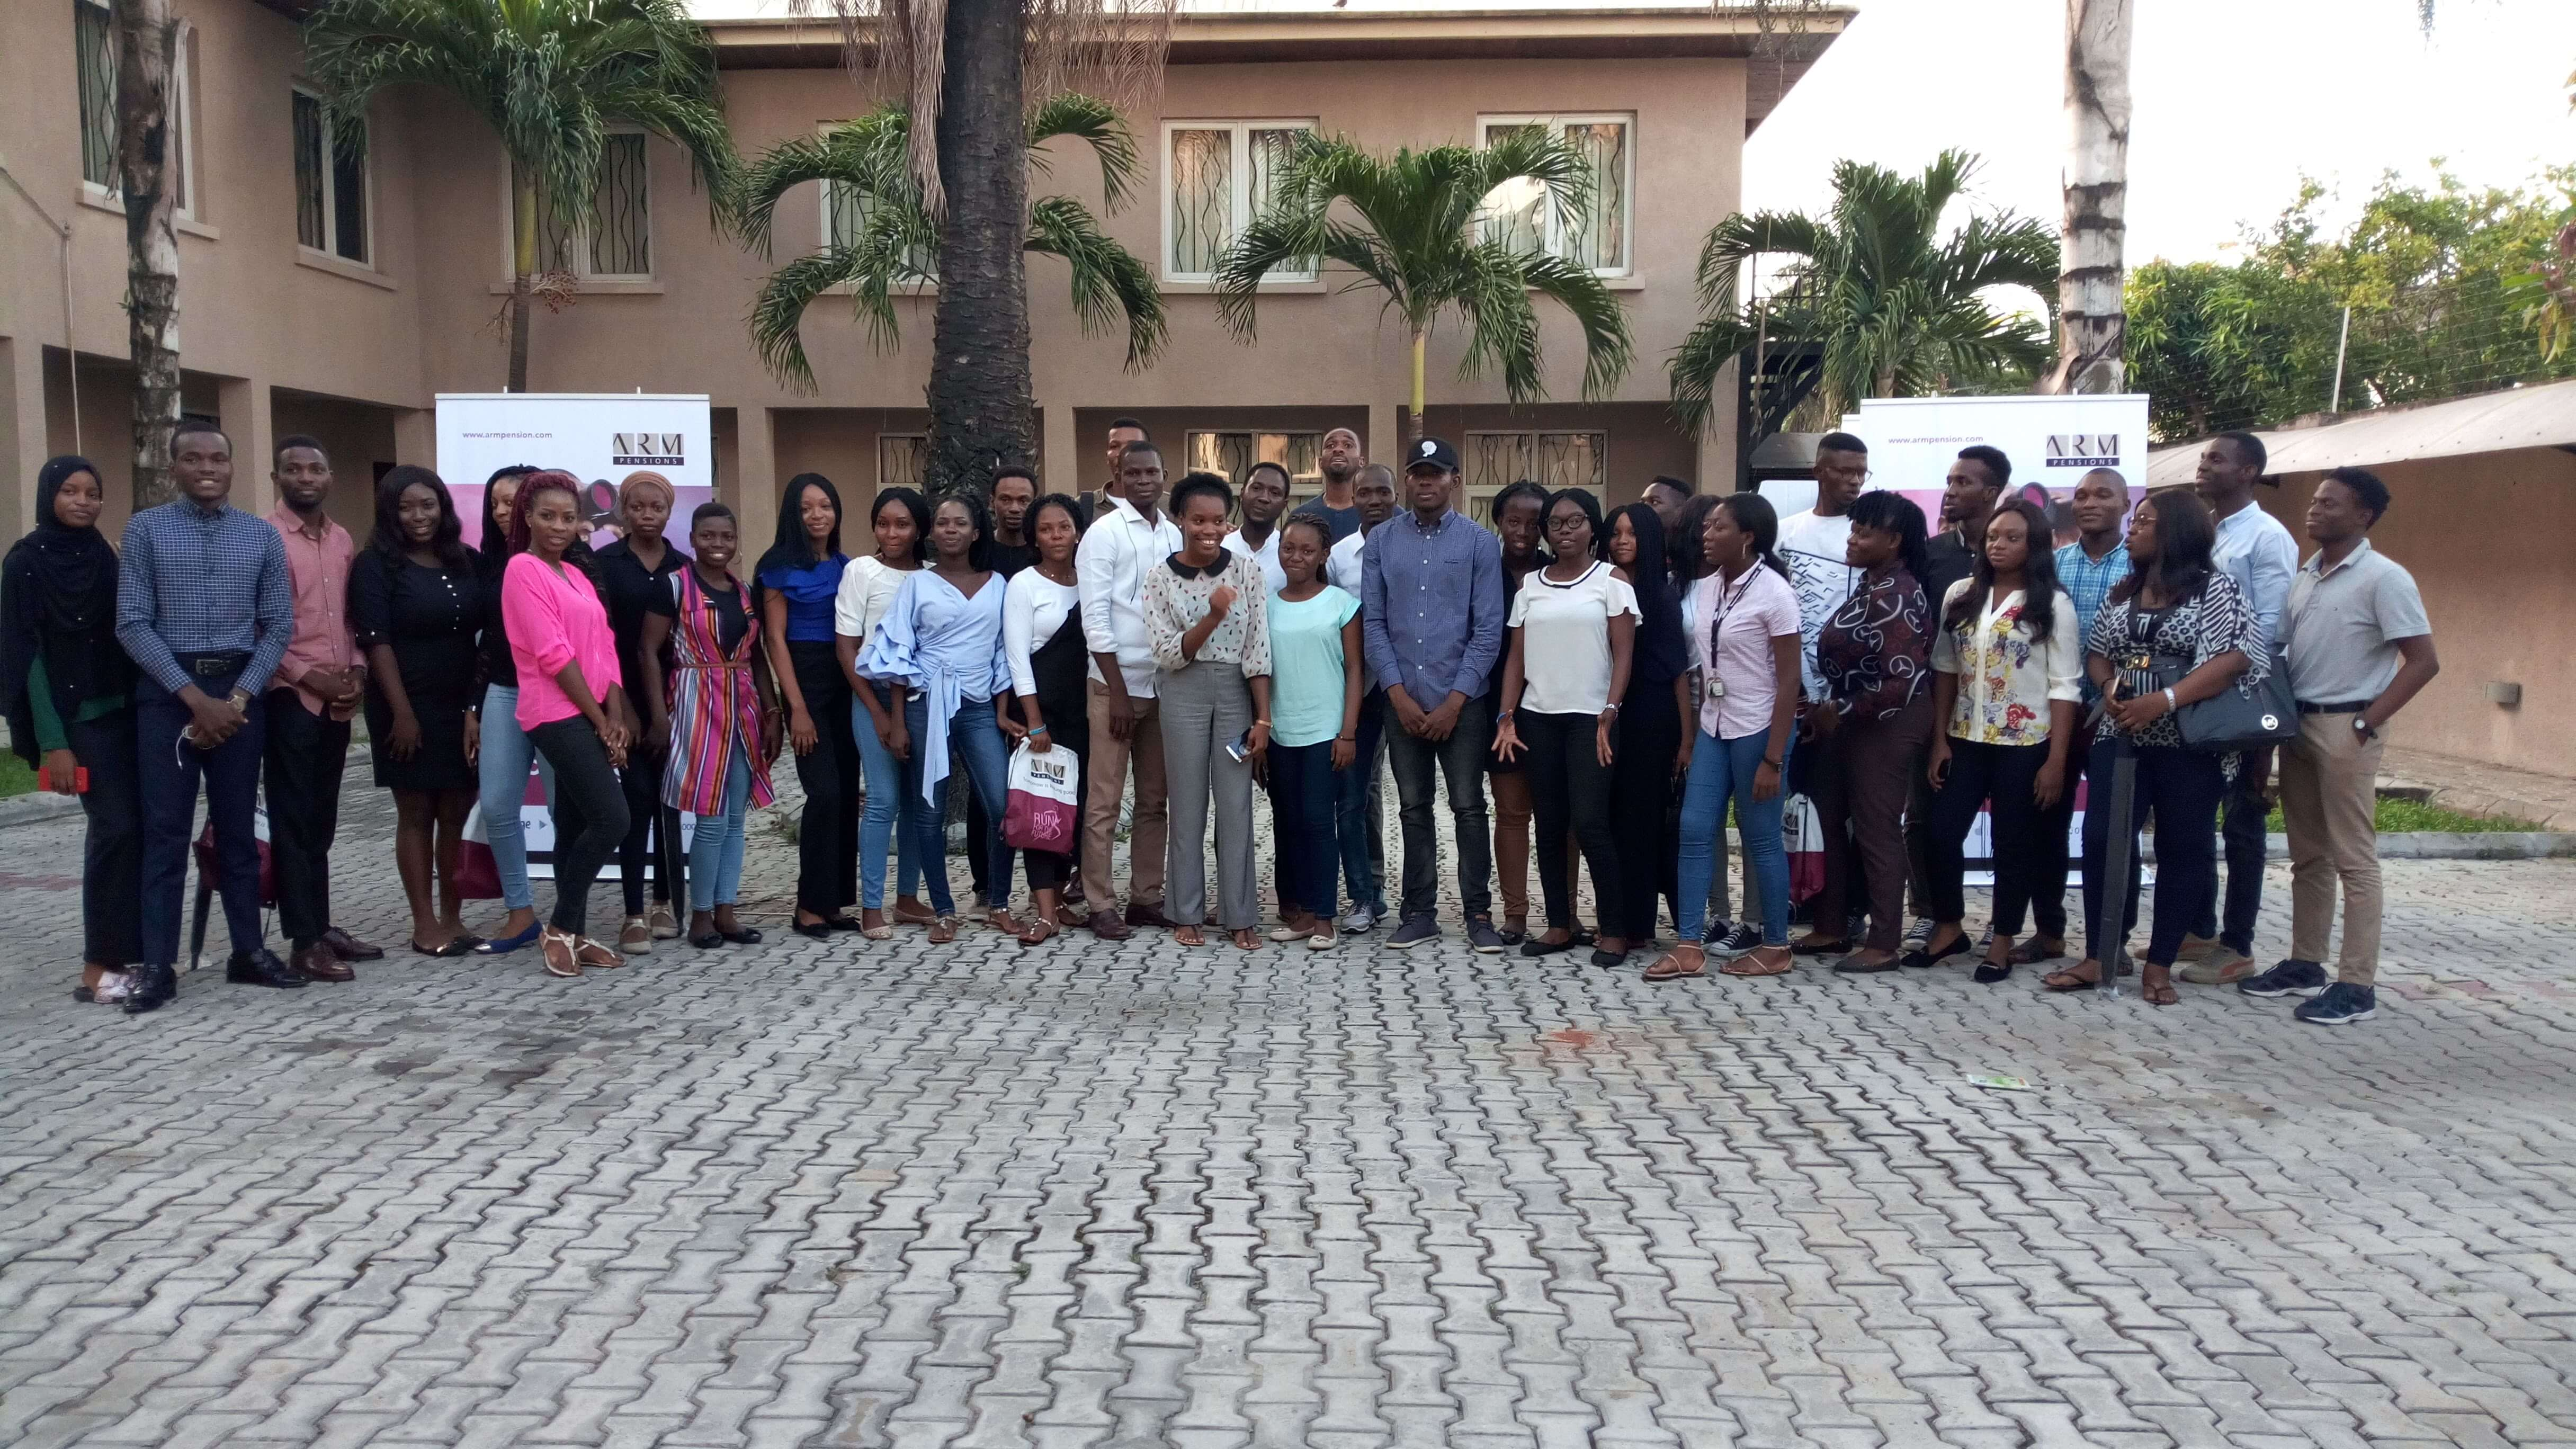 ARMP trains undergraduates in financial modelling and market application